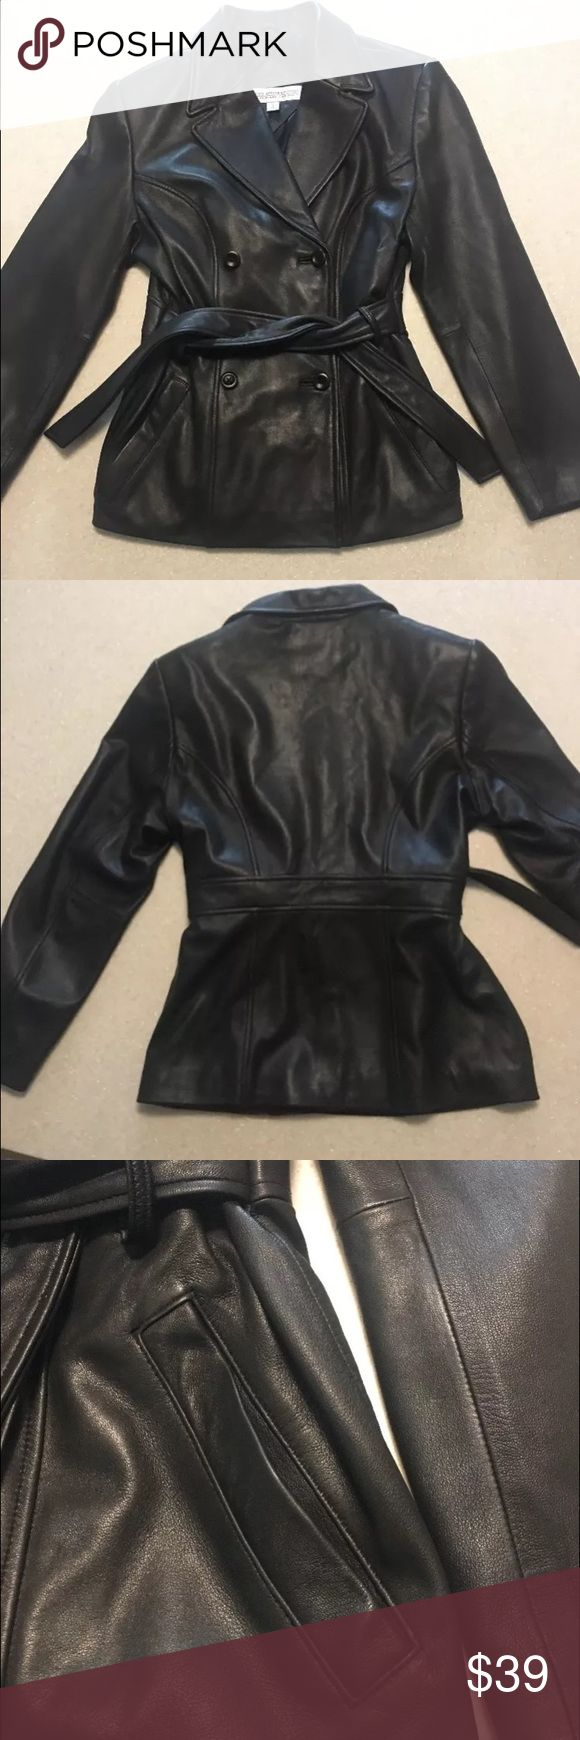 """Valerie Stevens NewZealand Lambskin Leather Jacket This jacket is made by Valerie Stevens.  It is made of New Zealand Lambskin.  It is a very soft leather jacket, and is in excellent condition.  It has 4 buttons (2 rows of 2) and a leather belt.  The buttons are a little loose.  The tag says Small but it runs big and fits like a medium.   Shoulder 16 1/2"""" Waist (measured at belt loop) 17"""" Coat length 25"""" Shoulder 17"""" Sleeve length (from center of collar to end of sleeve) 30"""" Chest-39""""…"""